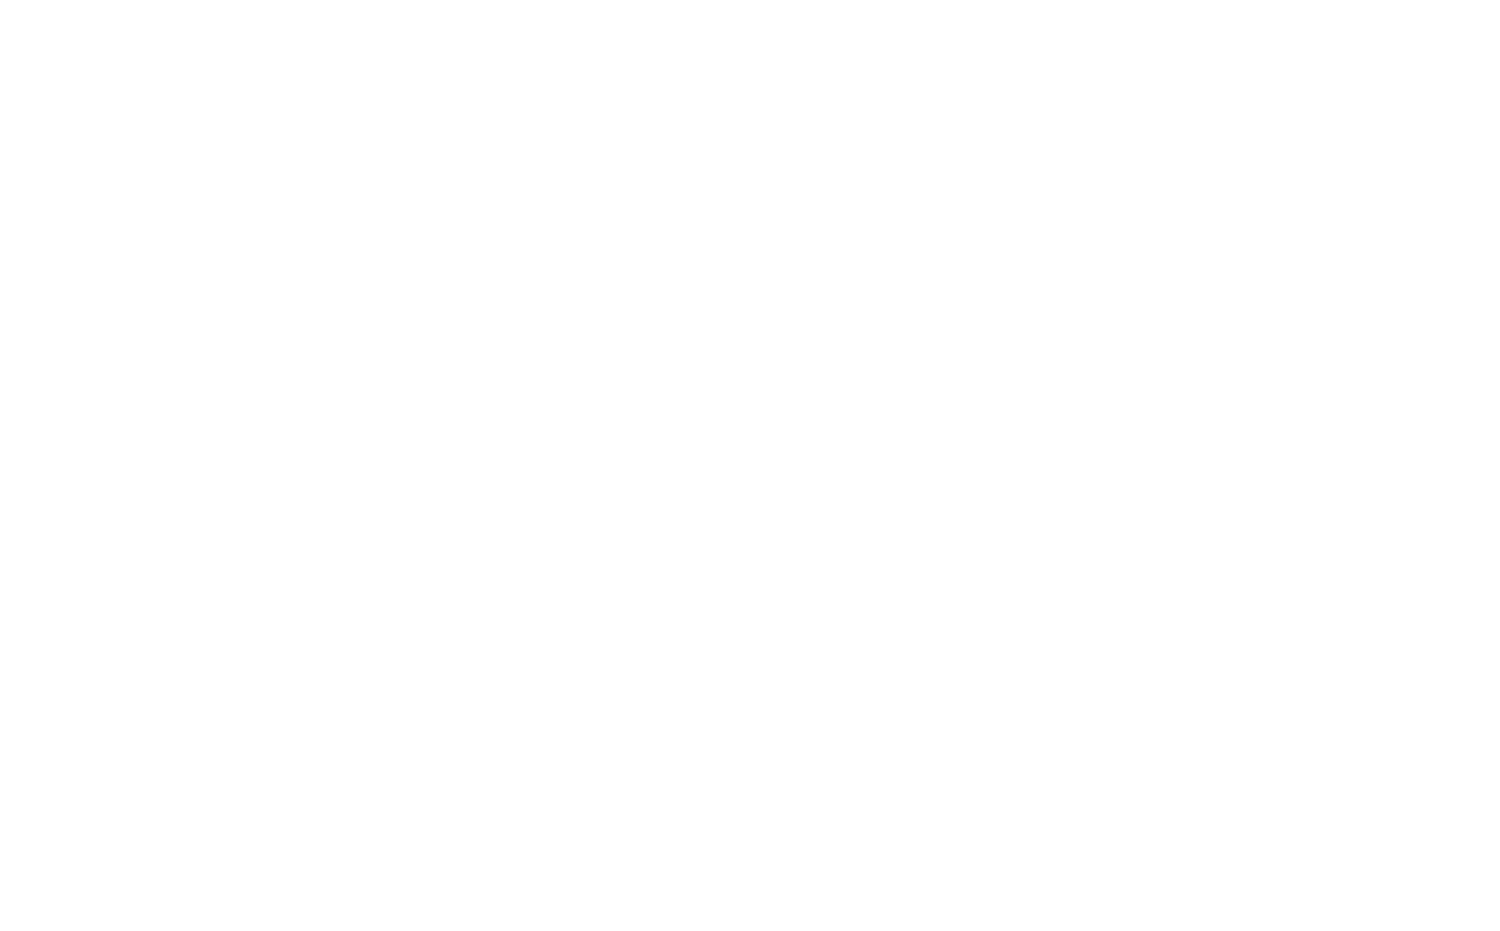 Yard Engineering